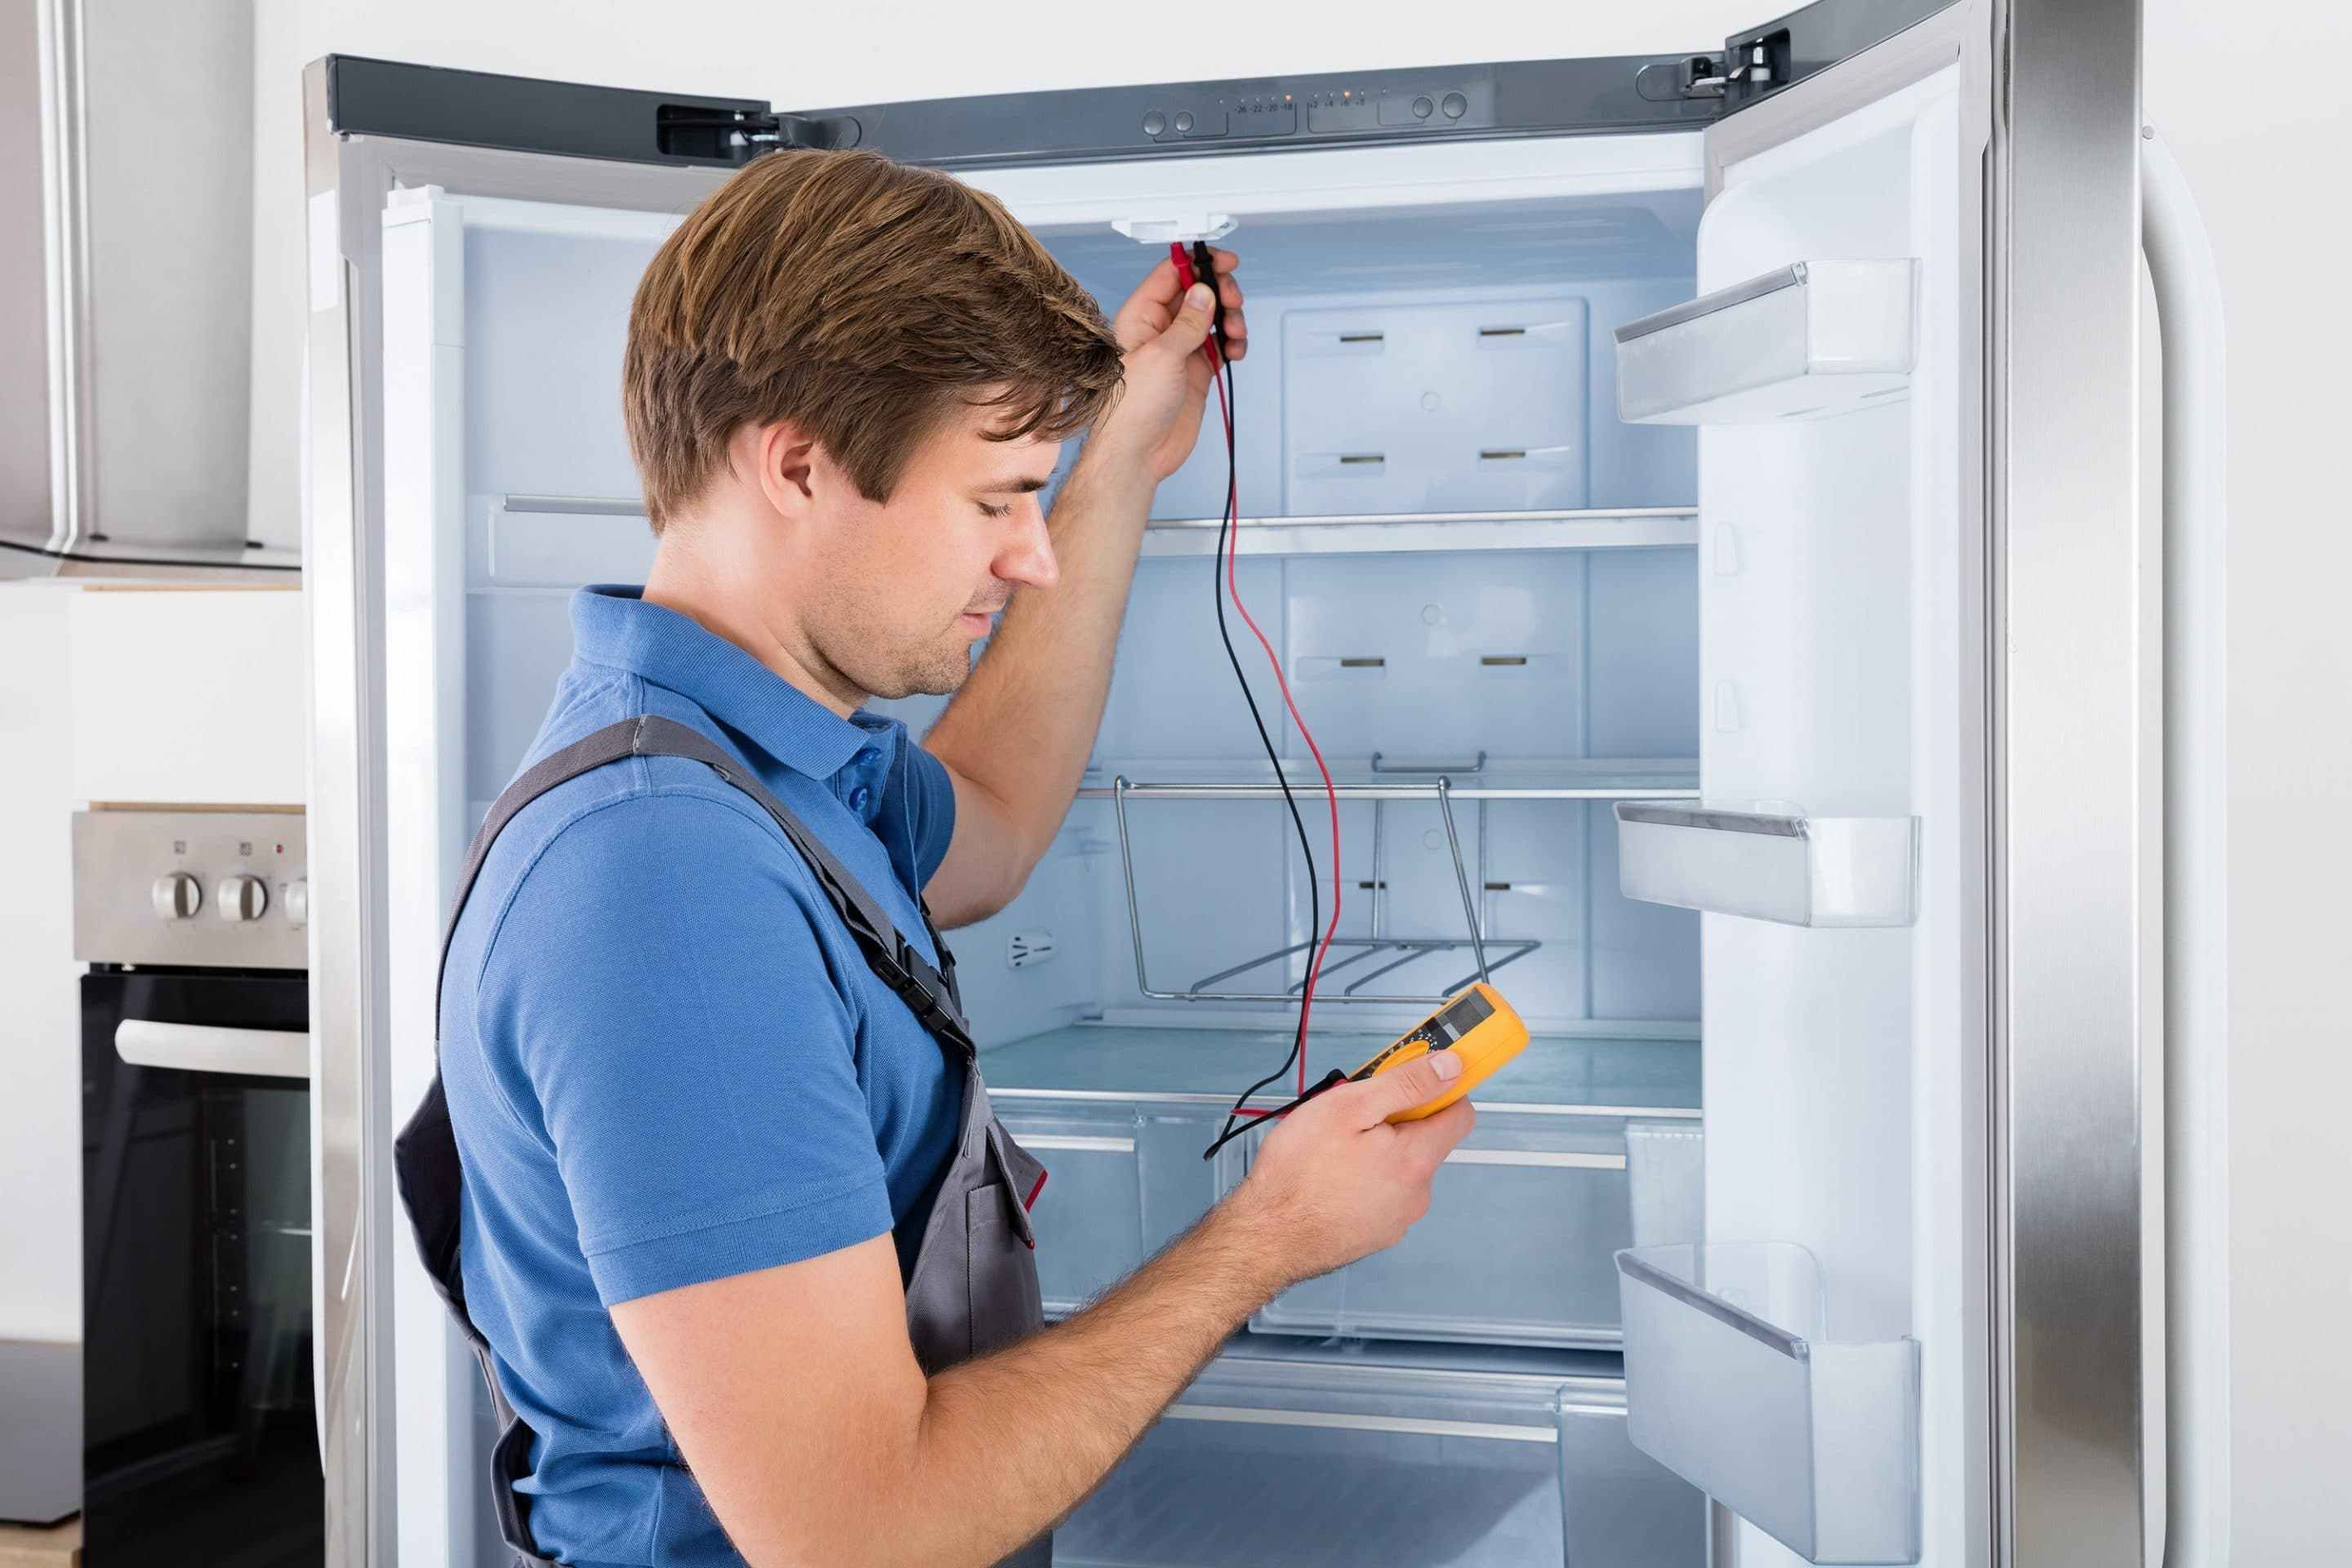 Pin On Refrigerator Repairing Services